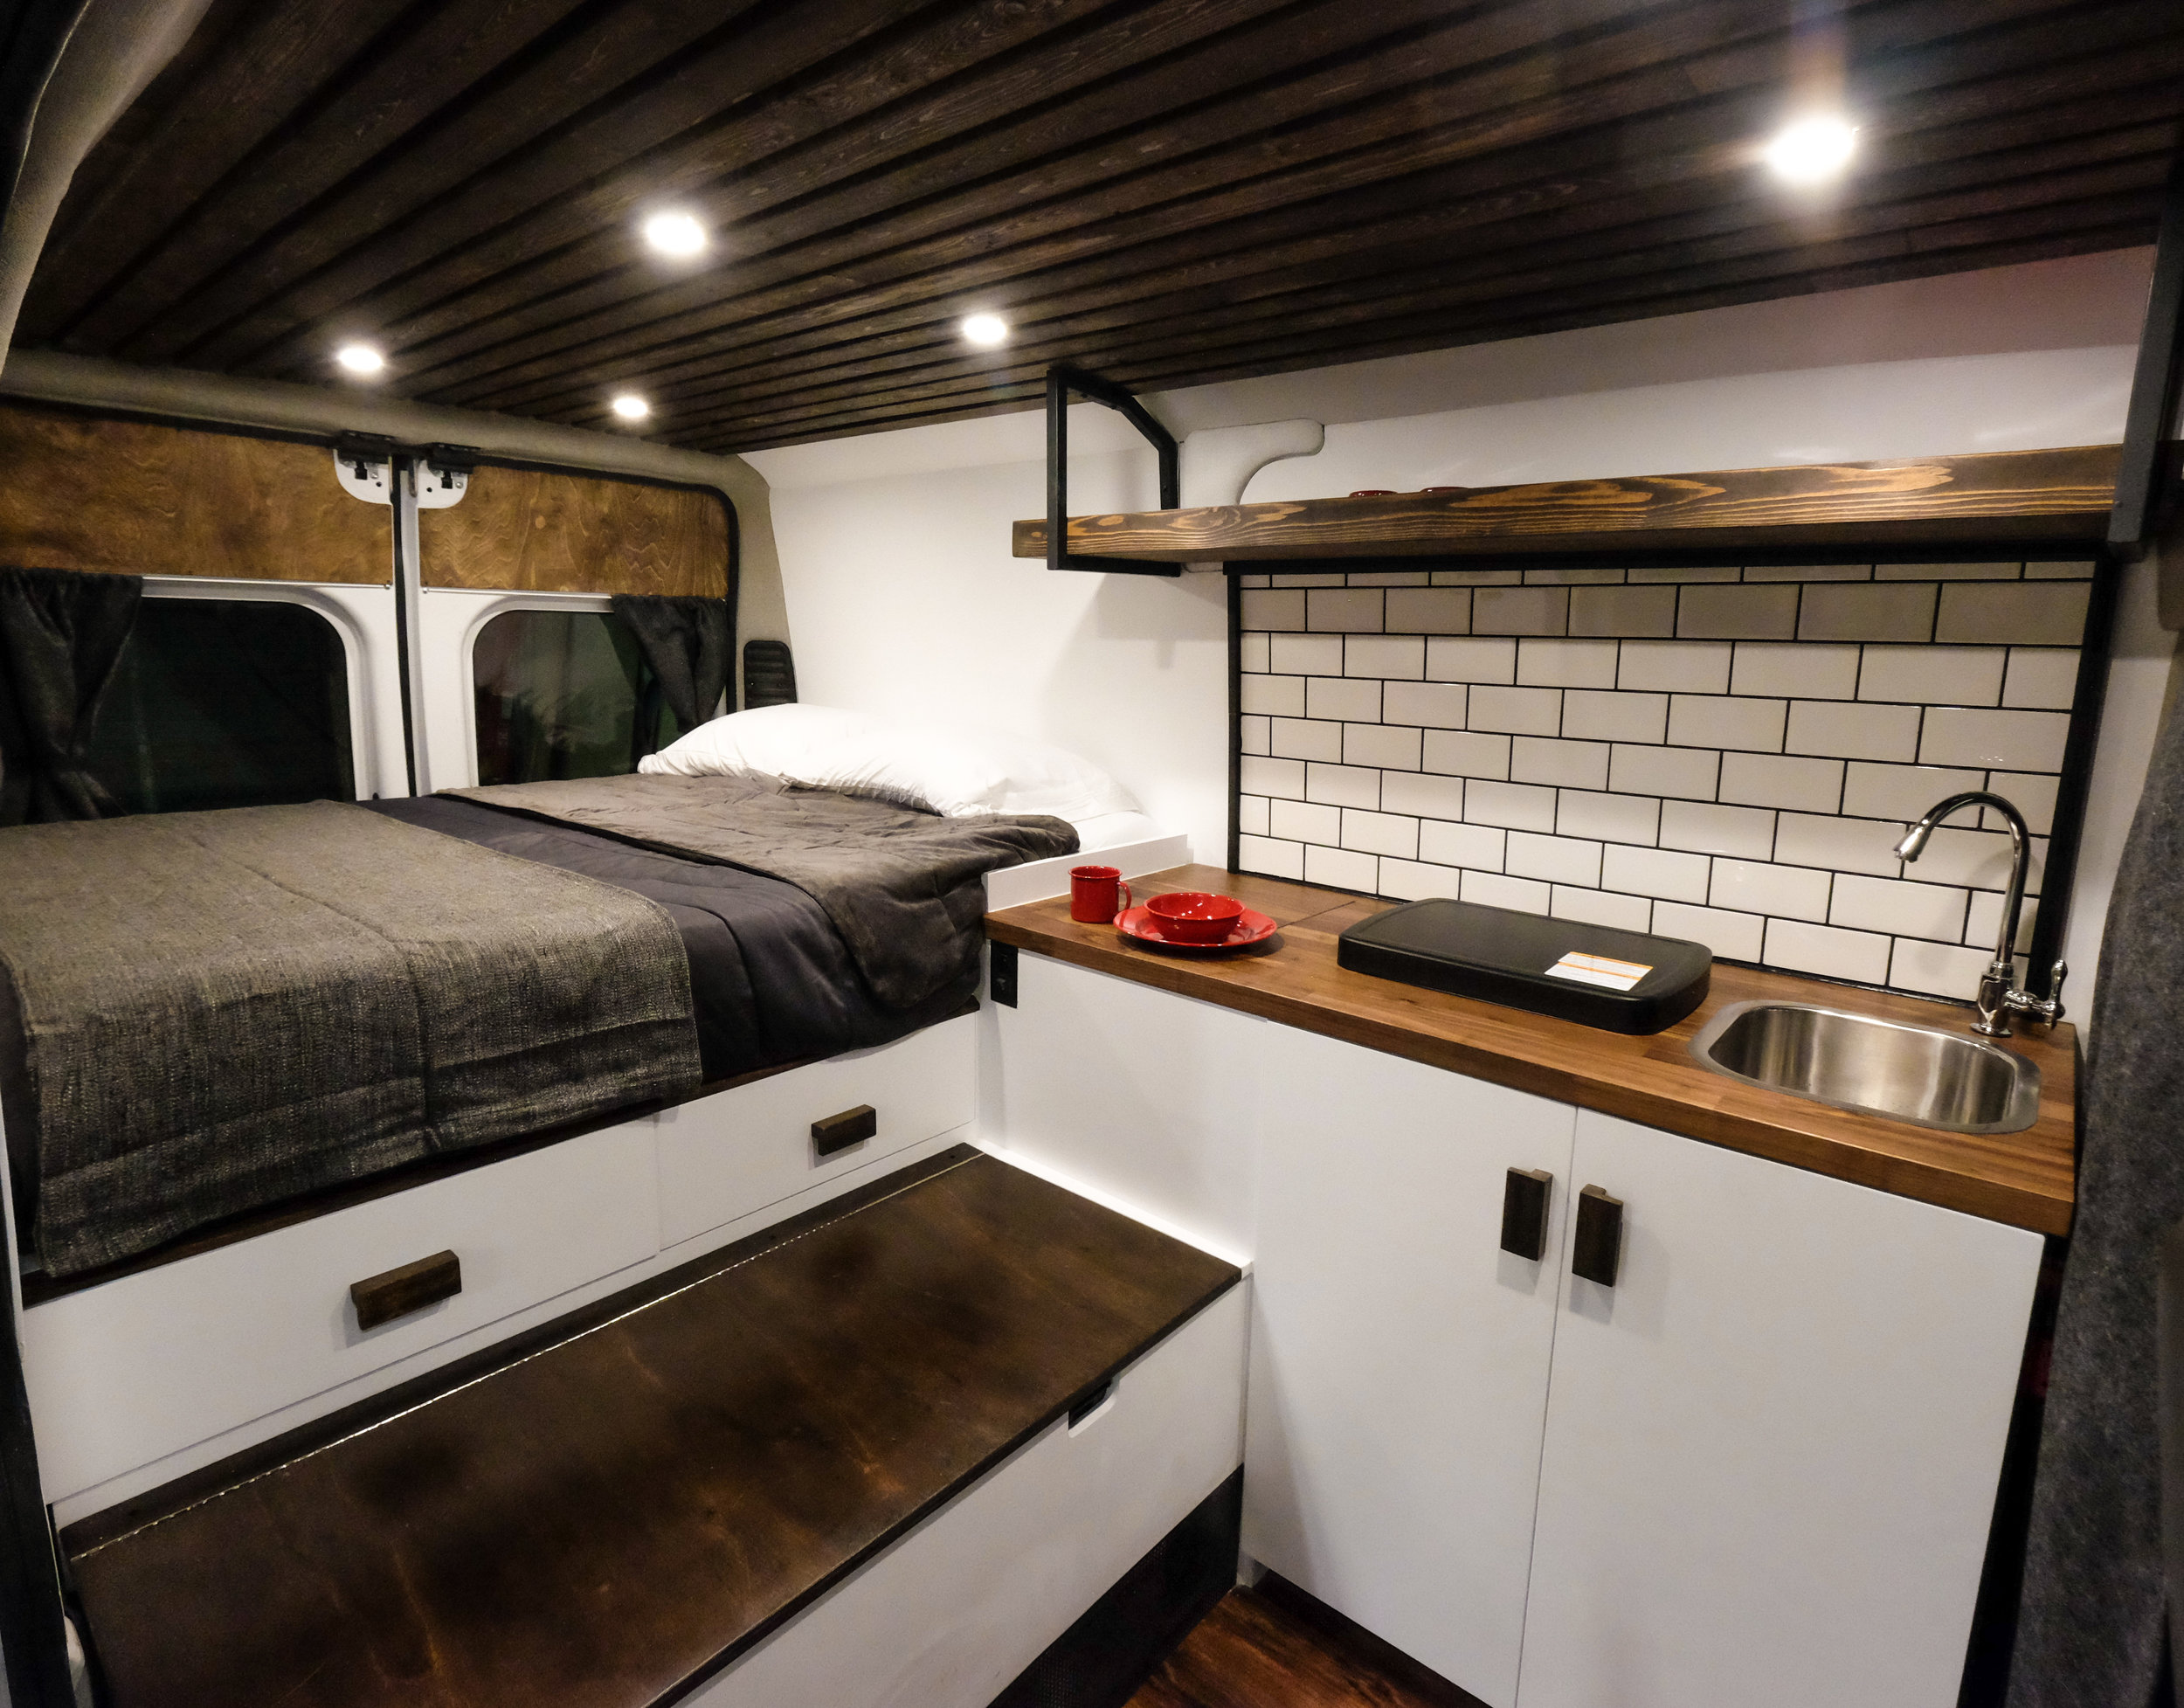 A tile backsplash and stainless steel sink add character to come home to after a long day on the road or on the trail. The bench and under-bed drawers complete the package with plenty of storage for all of your weekend gear.